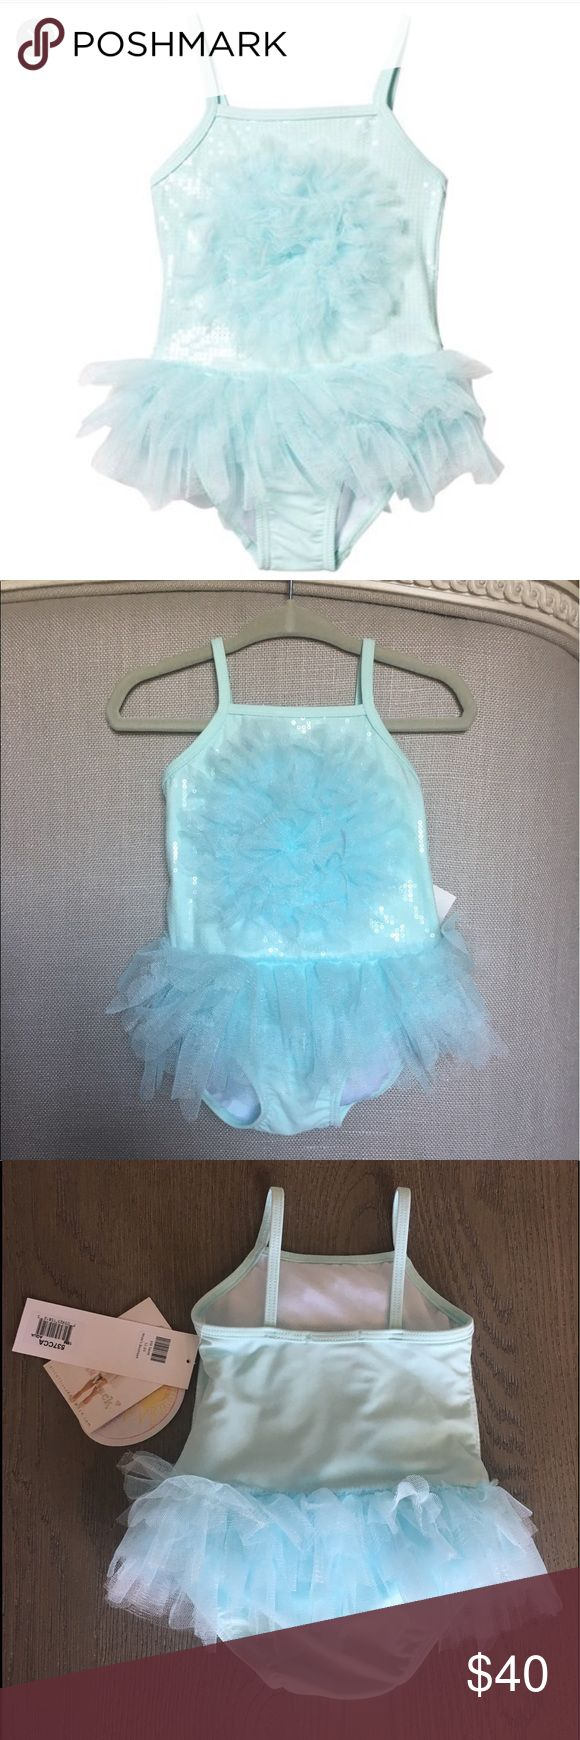 Kate Mack Biscotti Swimsuit Sequin and tulle tutu swimsuit. UPF 30+. Size is 18 months but fits more like 12 months. Brand new with tags! Perfect condition. Kate Mack Swim One Piece